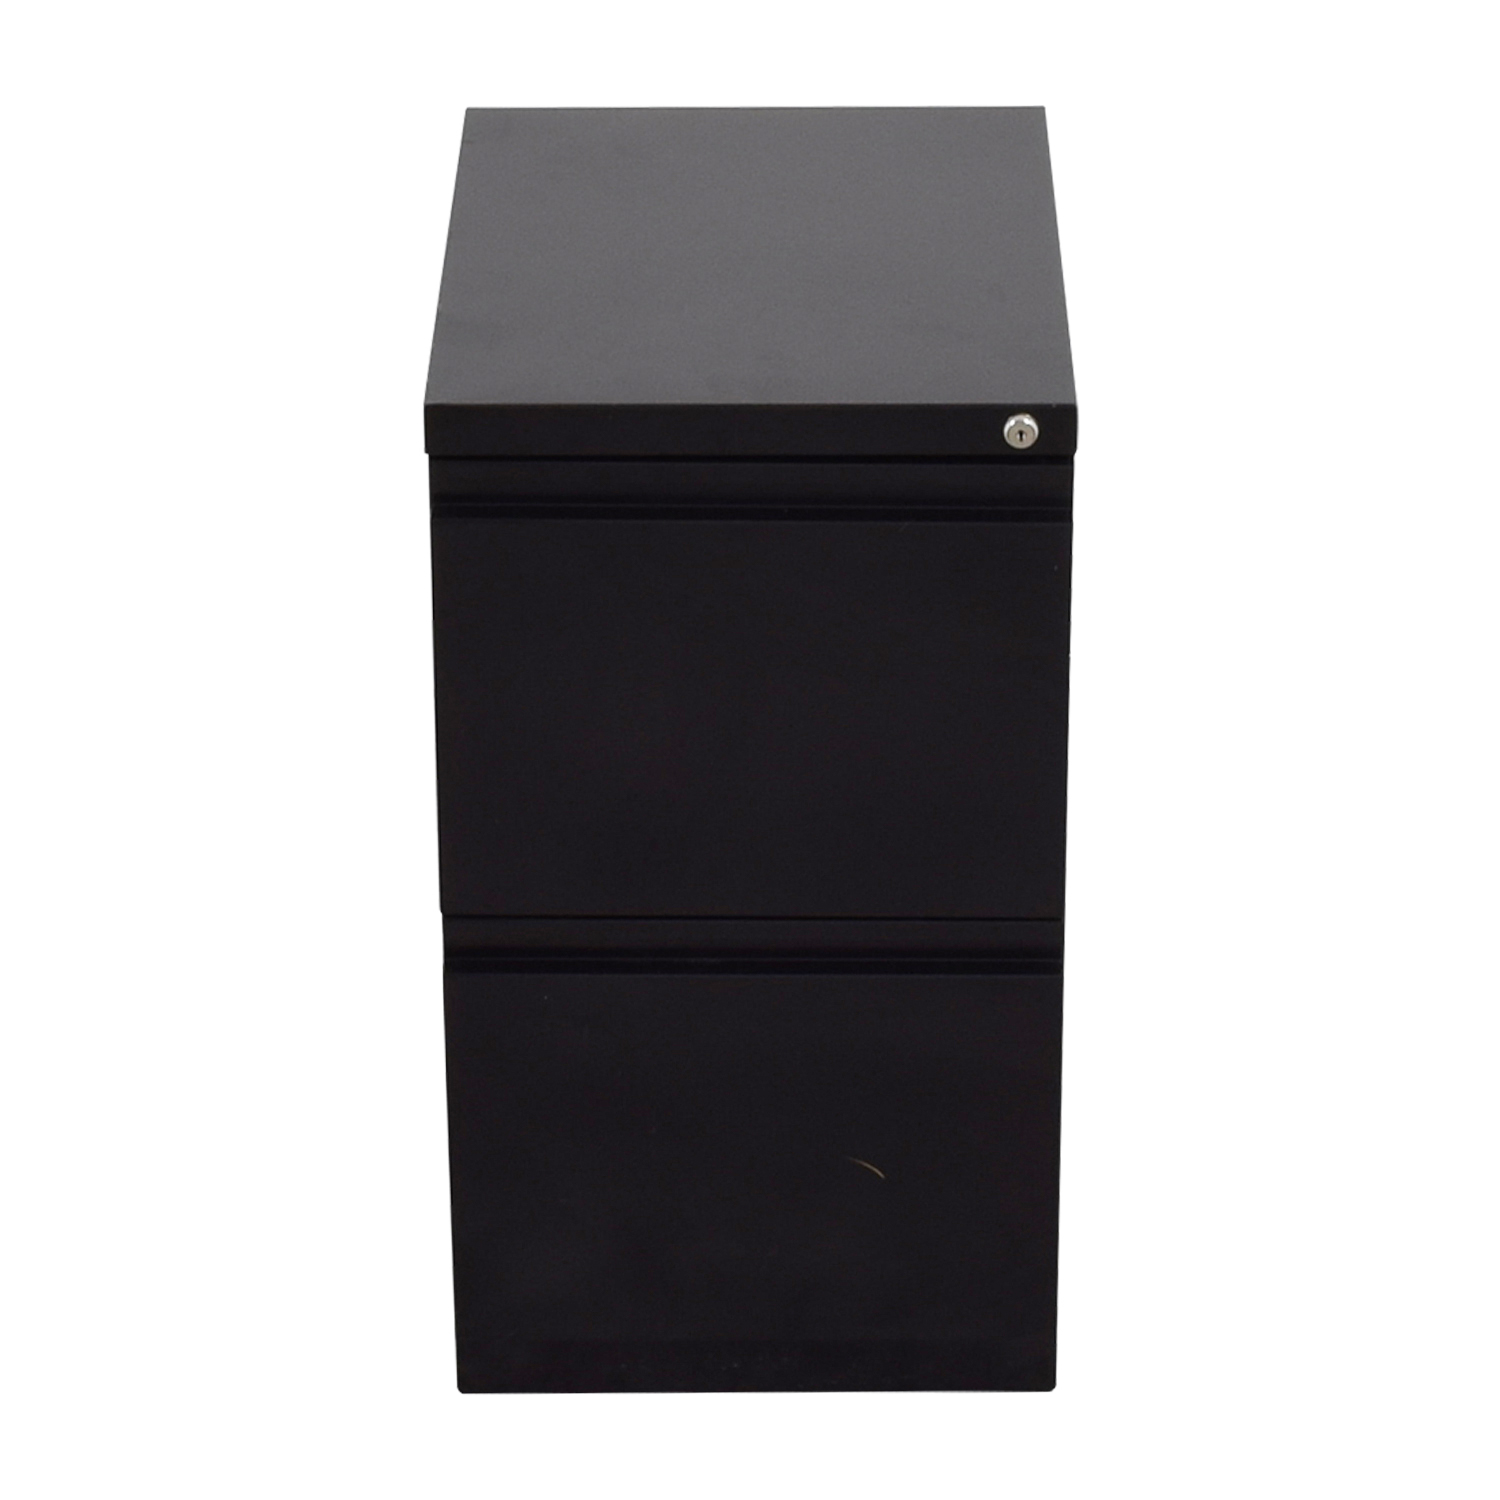 Staples Staples 2-Drawer Mobile Pedestal File Cabinet for sale